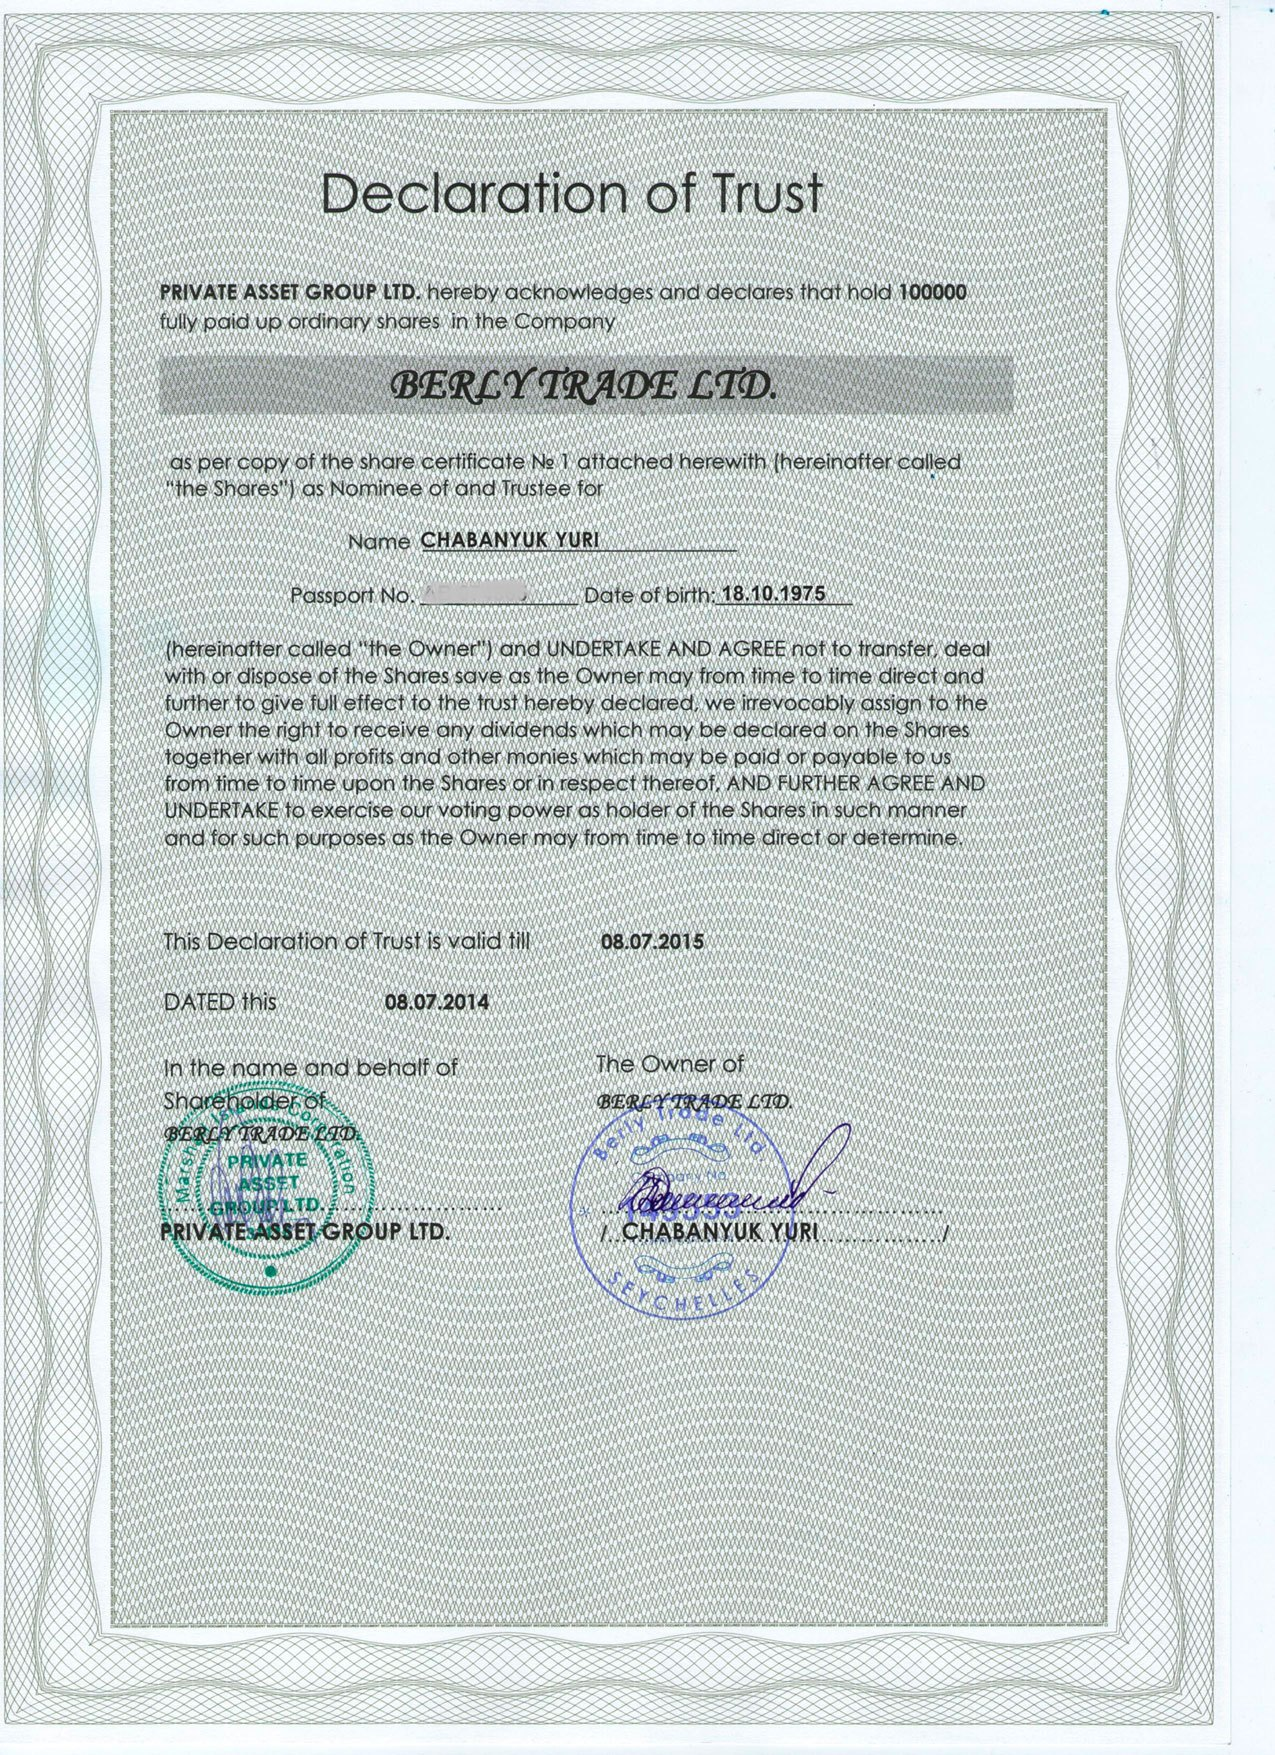 berly-trade-declaration-of-trust-berly-trade-ltd